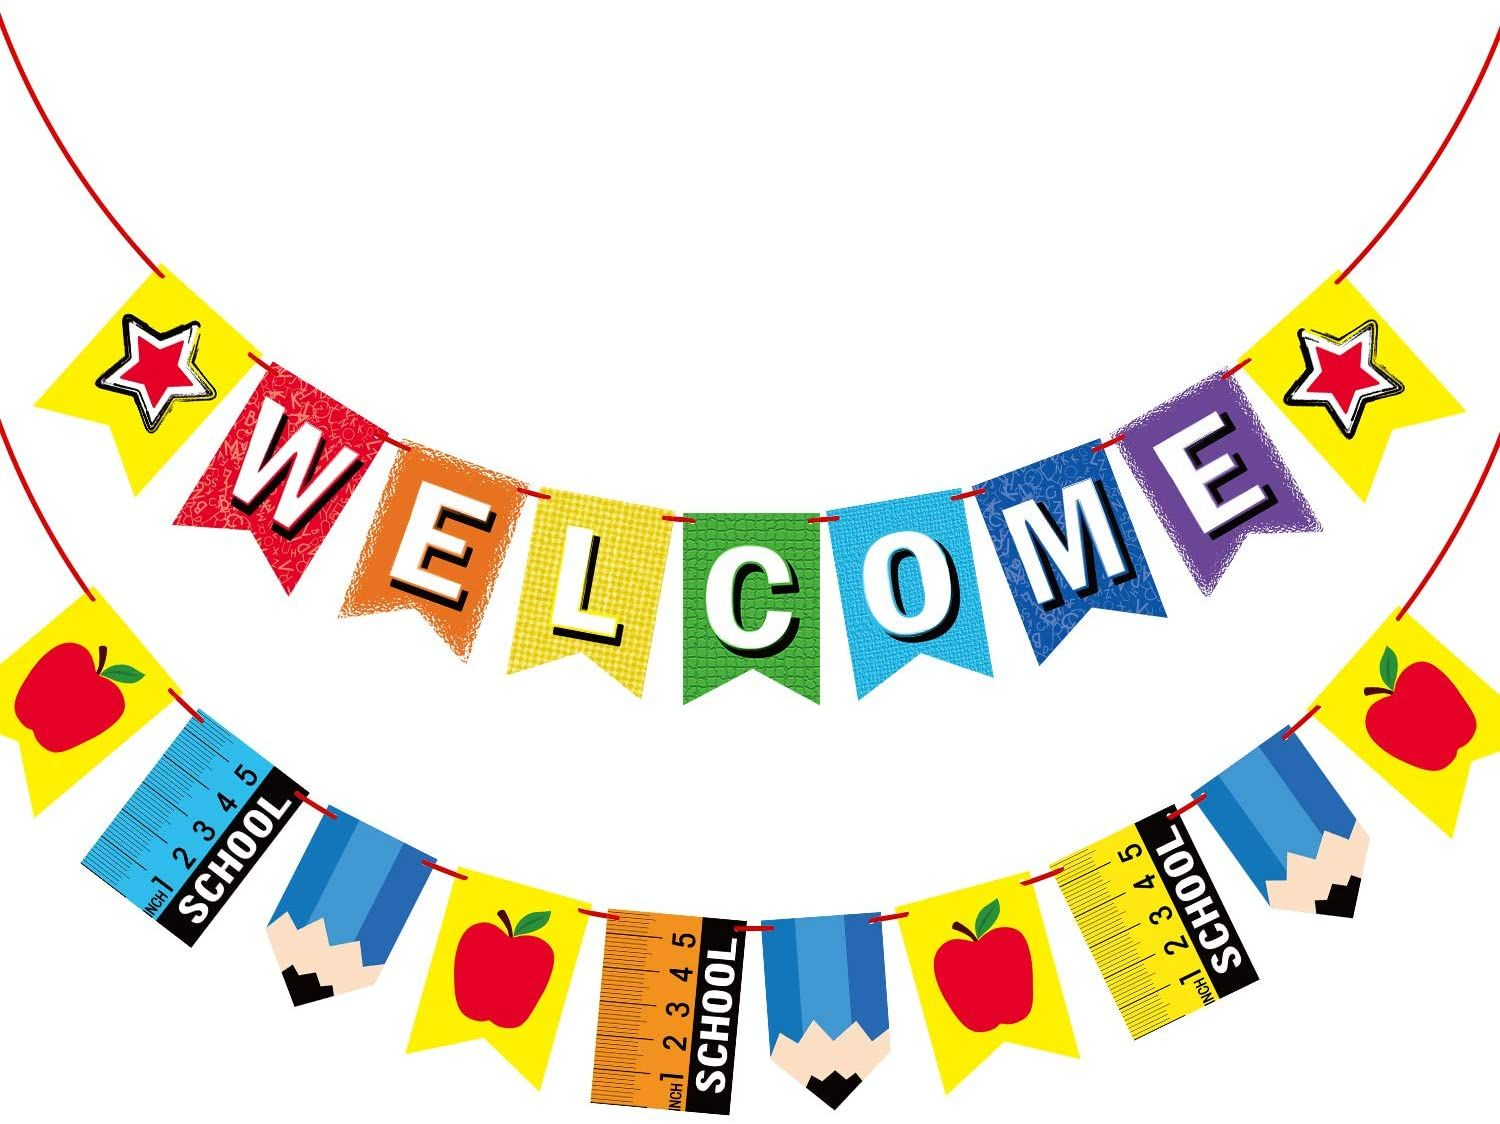 Welcome Banner For Party Supplies First Day Of School Banner School Theme Party Decorations For Stud School Banner Welcome Banner School Themes